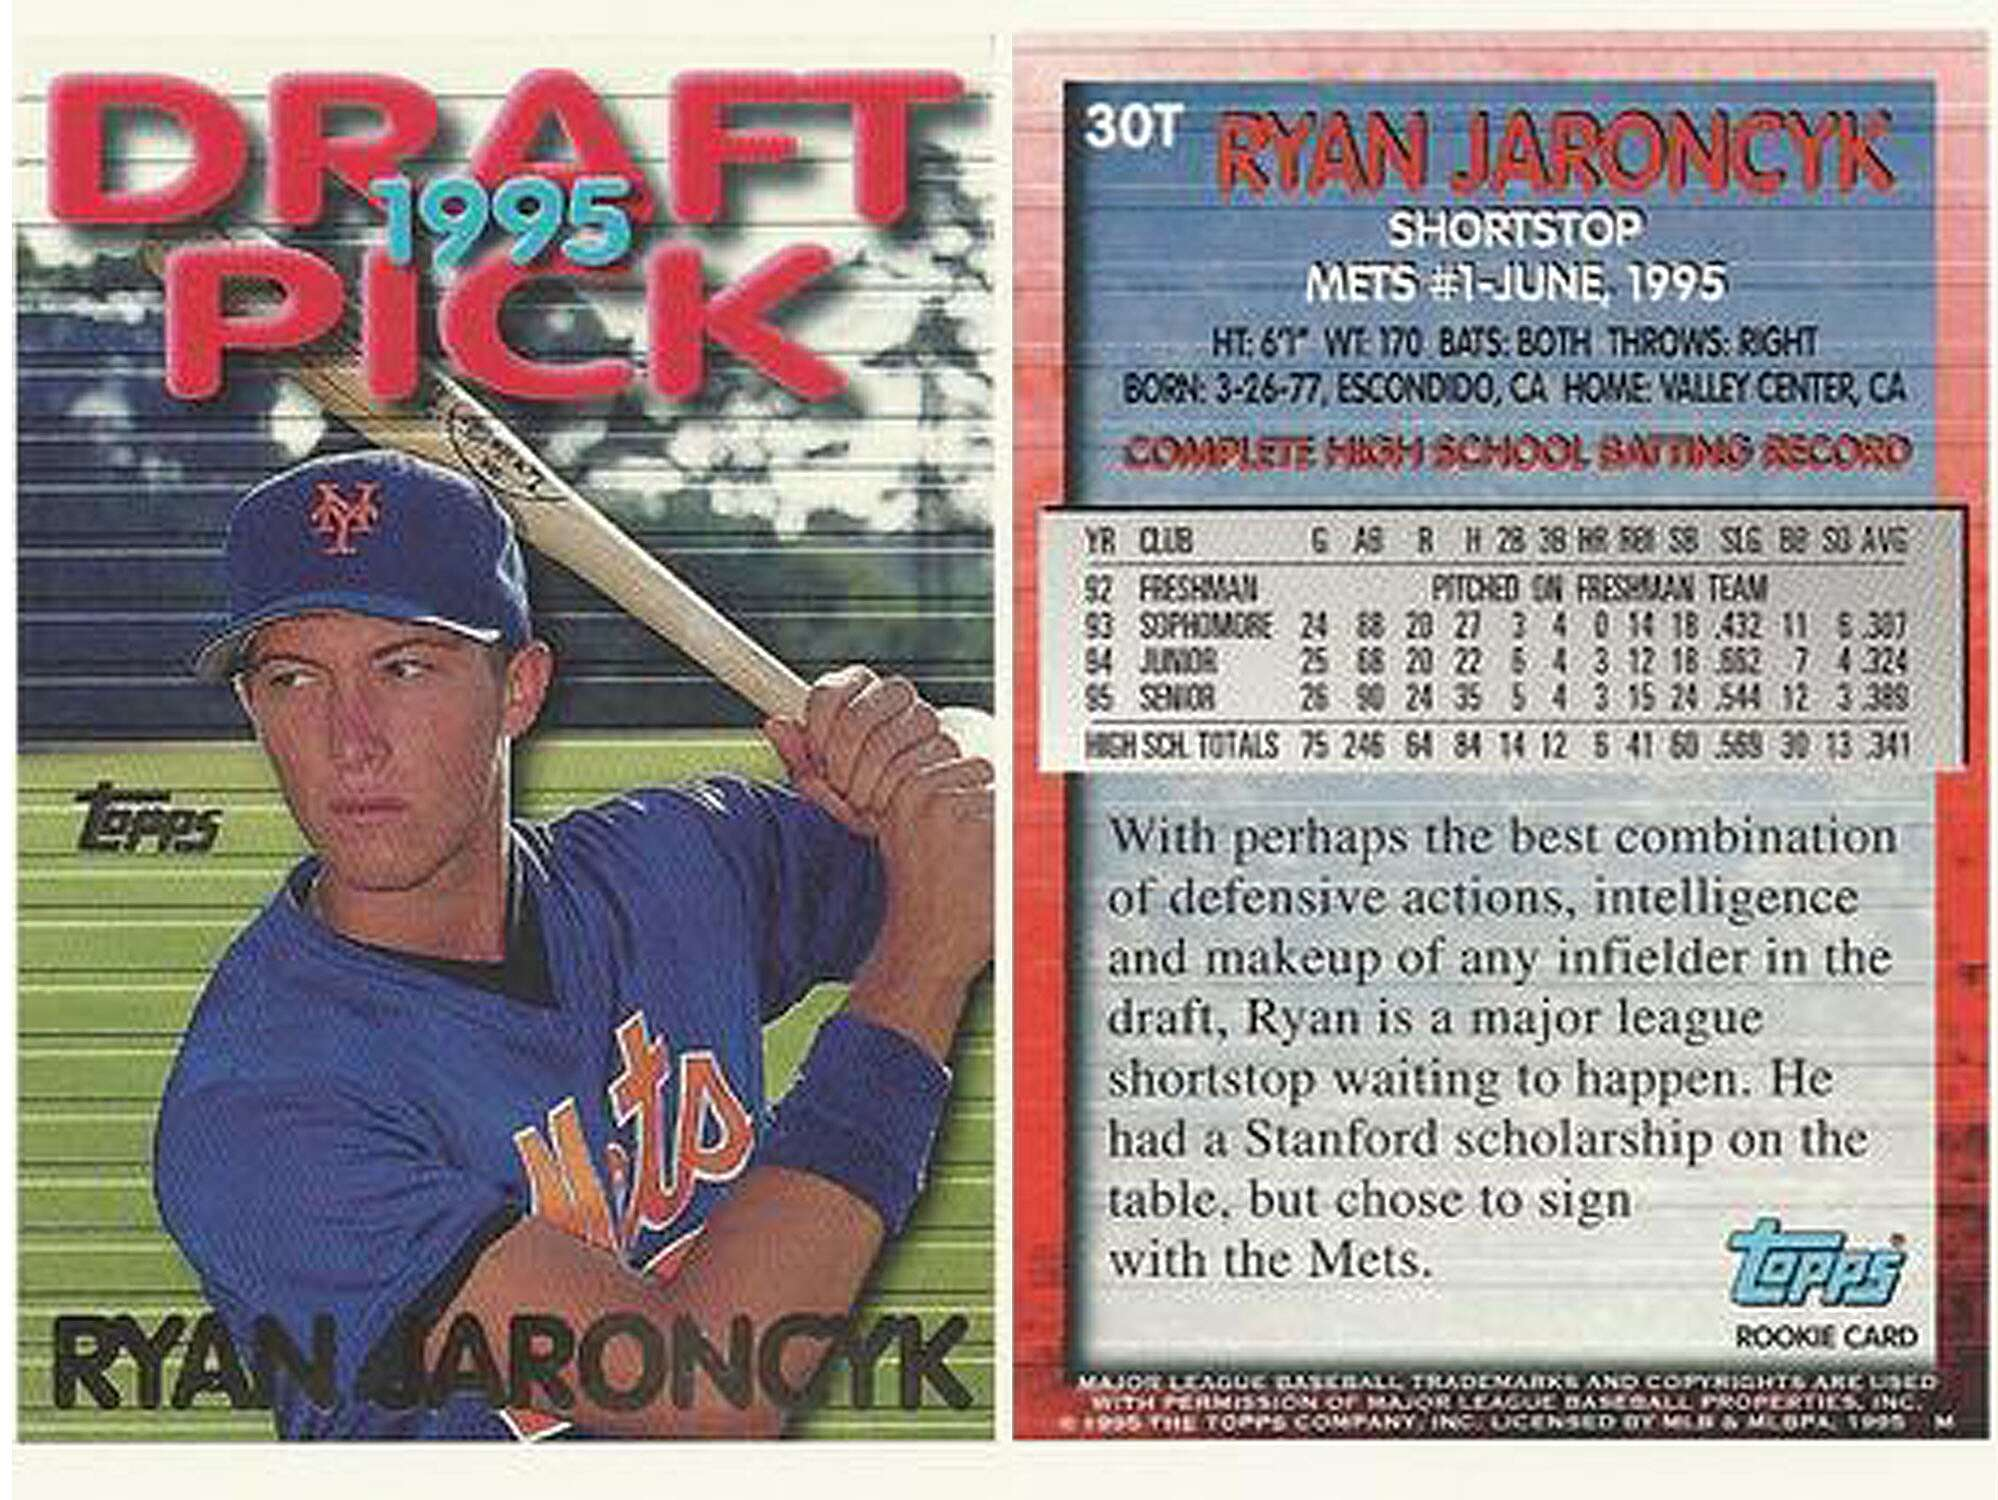 Ryan Jaroncyk The Mets First Round Pick Who Quit Baseball